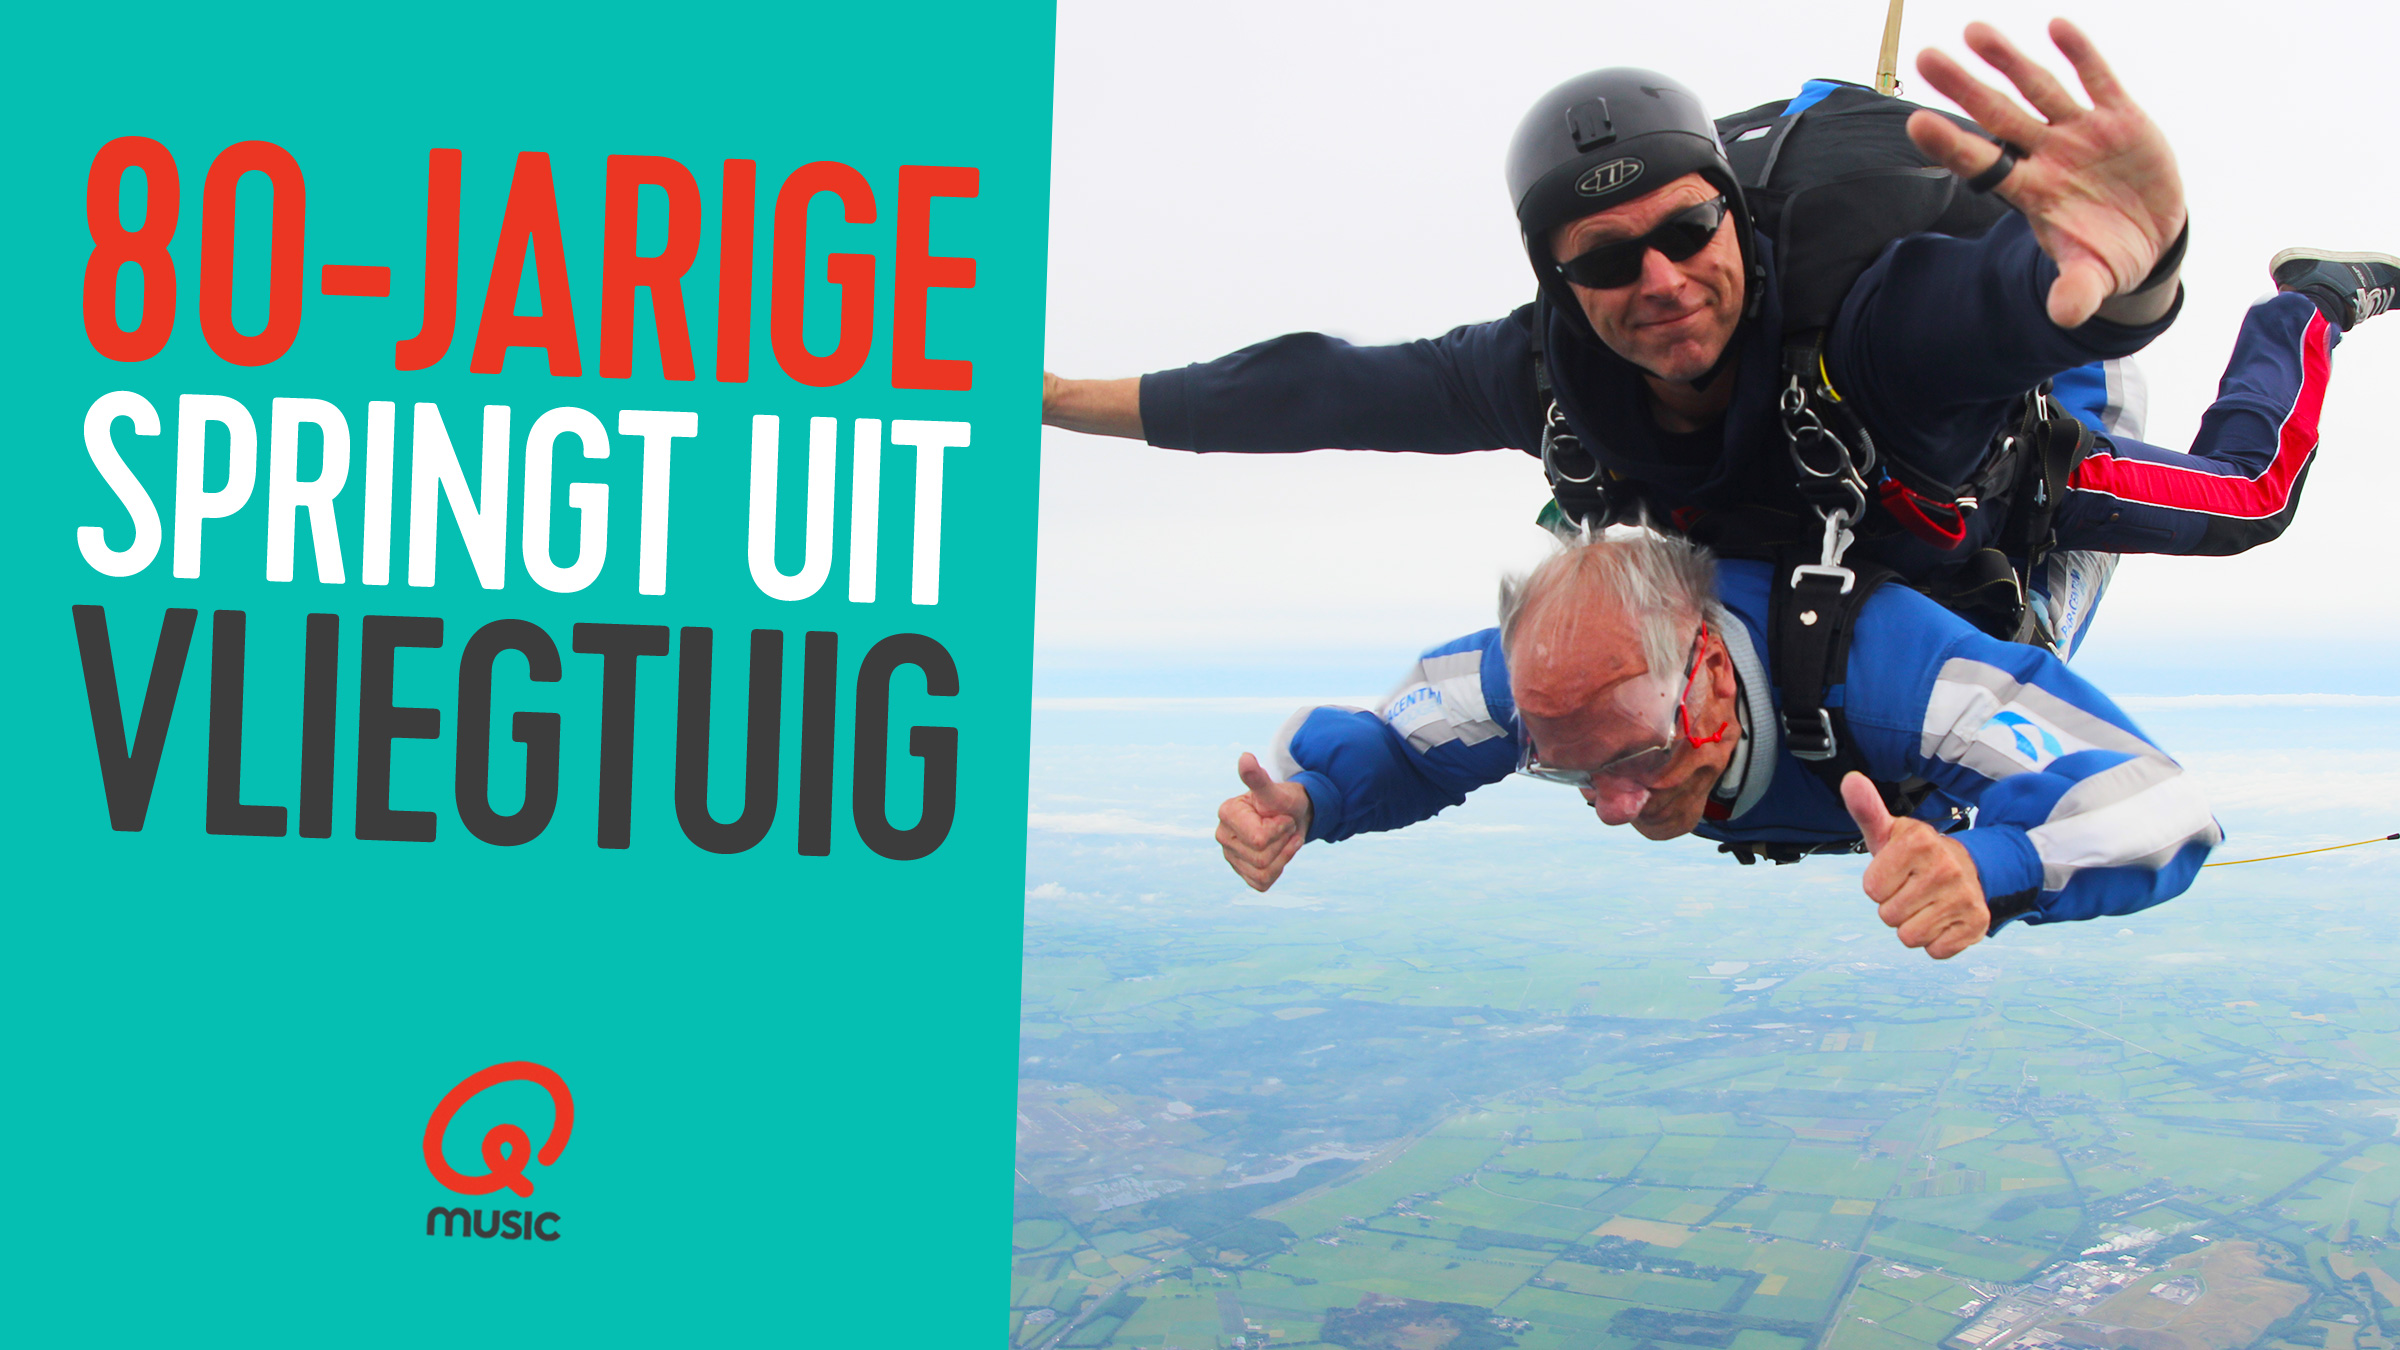 Skydiven thumb2